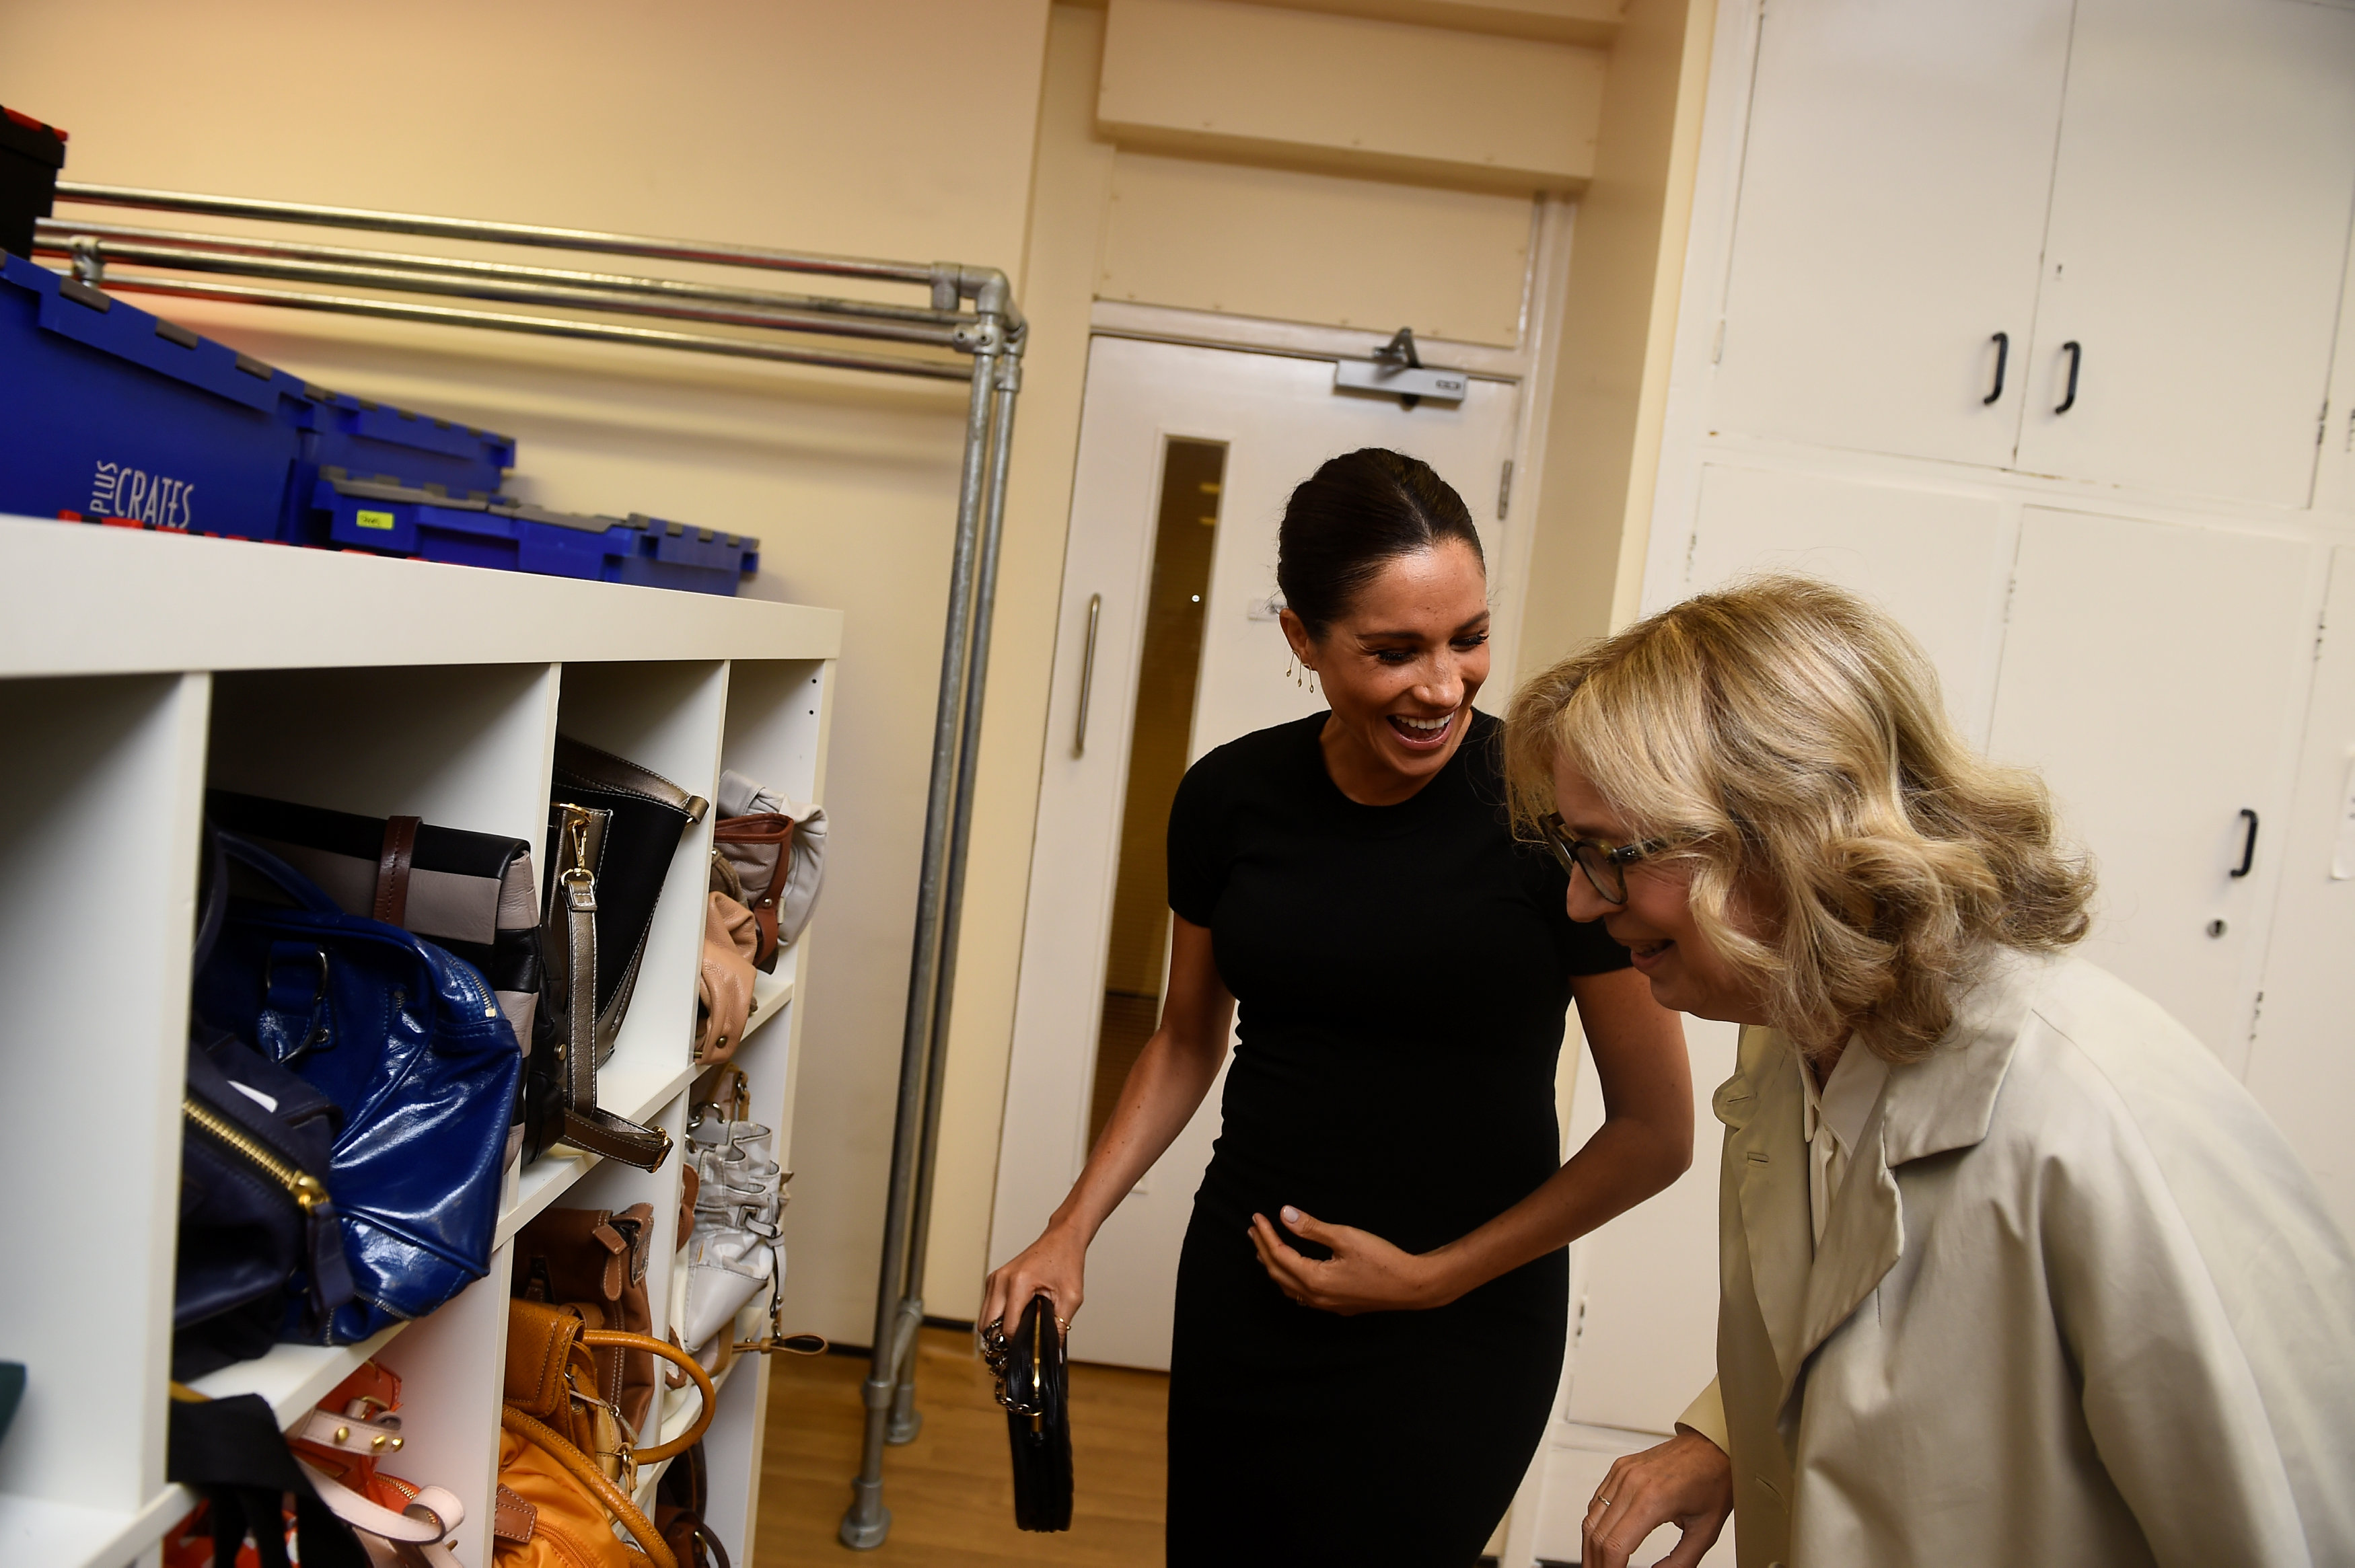 Meghan, Duchess of Sussex reacts as she looks at bags with Lady Juliet Hughes-Hallett during her visit to Smart Works on January 10, 2019 in London, United Kingdom. Smart Works is one of the four organizations which she has become Royal Patron of it was announced today by Kensington Palace. The three other organisations are The National Theatre, The Association of Commonwealth Universities (ACU) and Mayhew. (Photo by Clodagh Kilcoyne - WPA Pool/Getty Images)